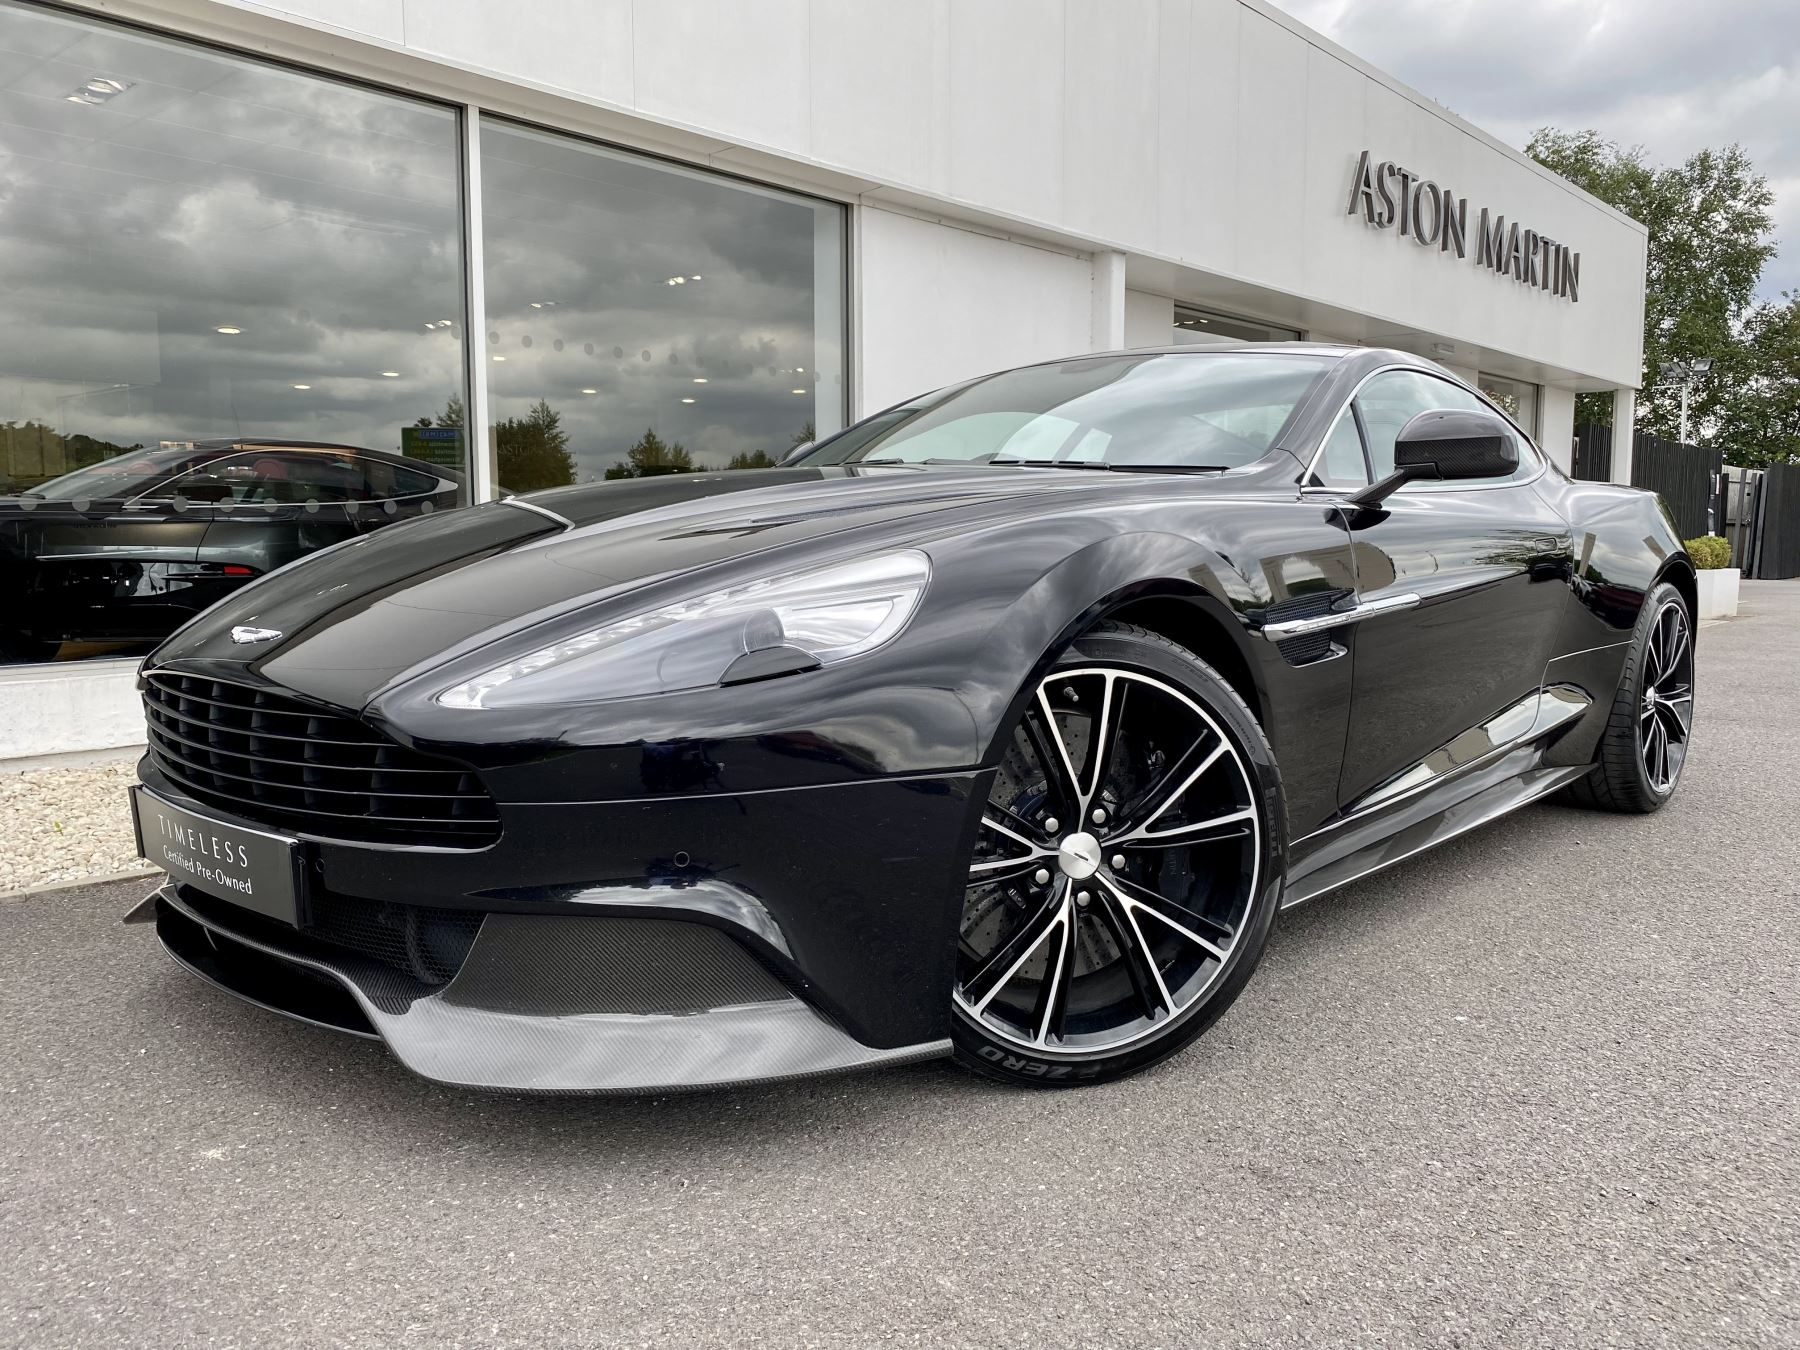 Aston Martin Vanquish V12 [568] 2+2 2dr Touchtronic 3 8 Speed, 2 Owners From New, Onyx Black, Bang And Olufsen. image 3